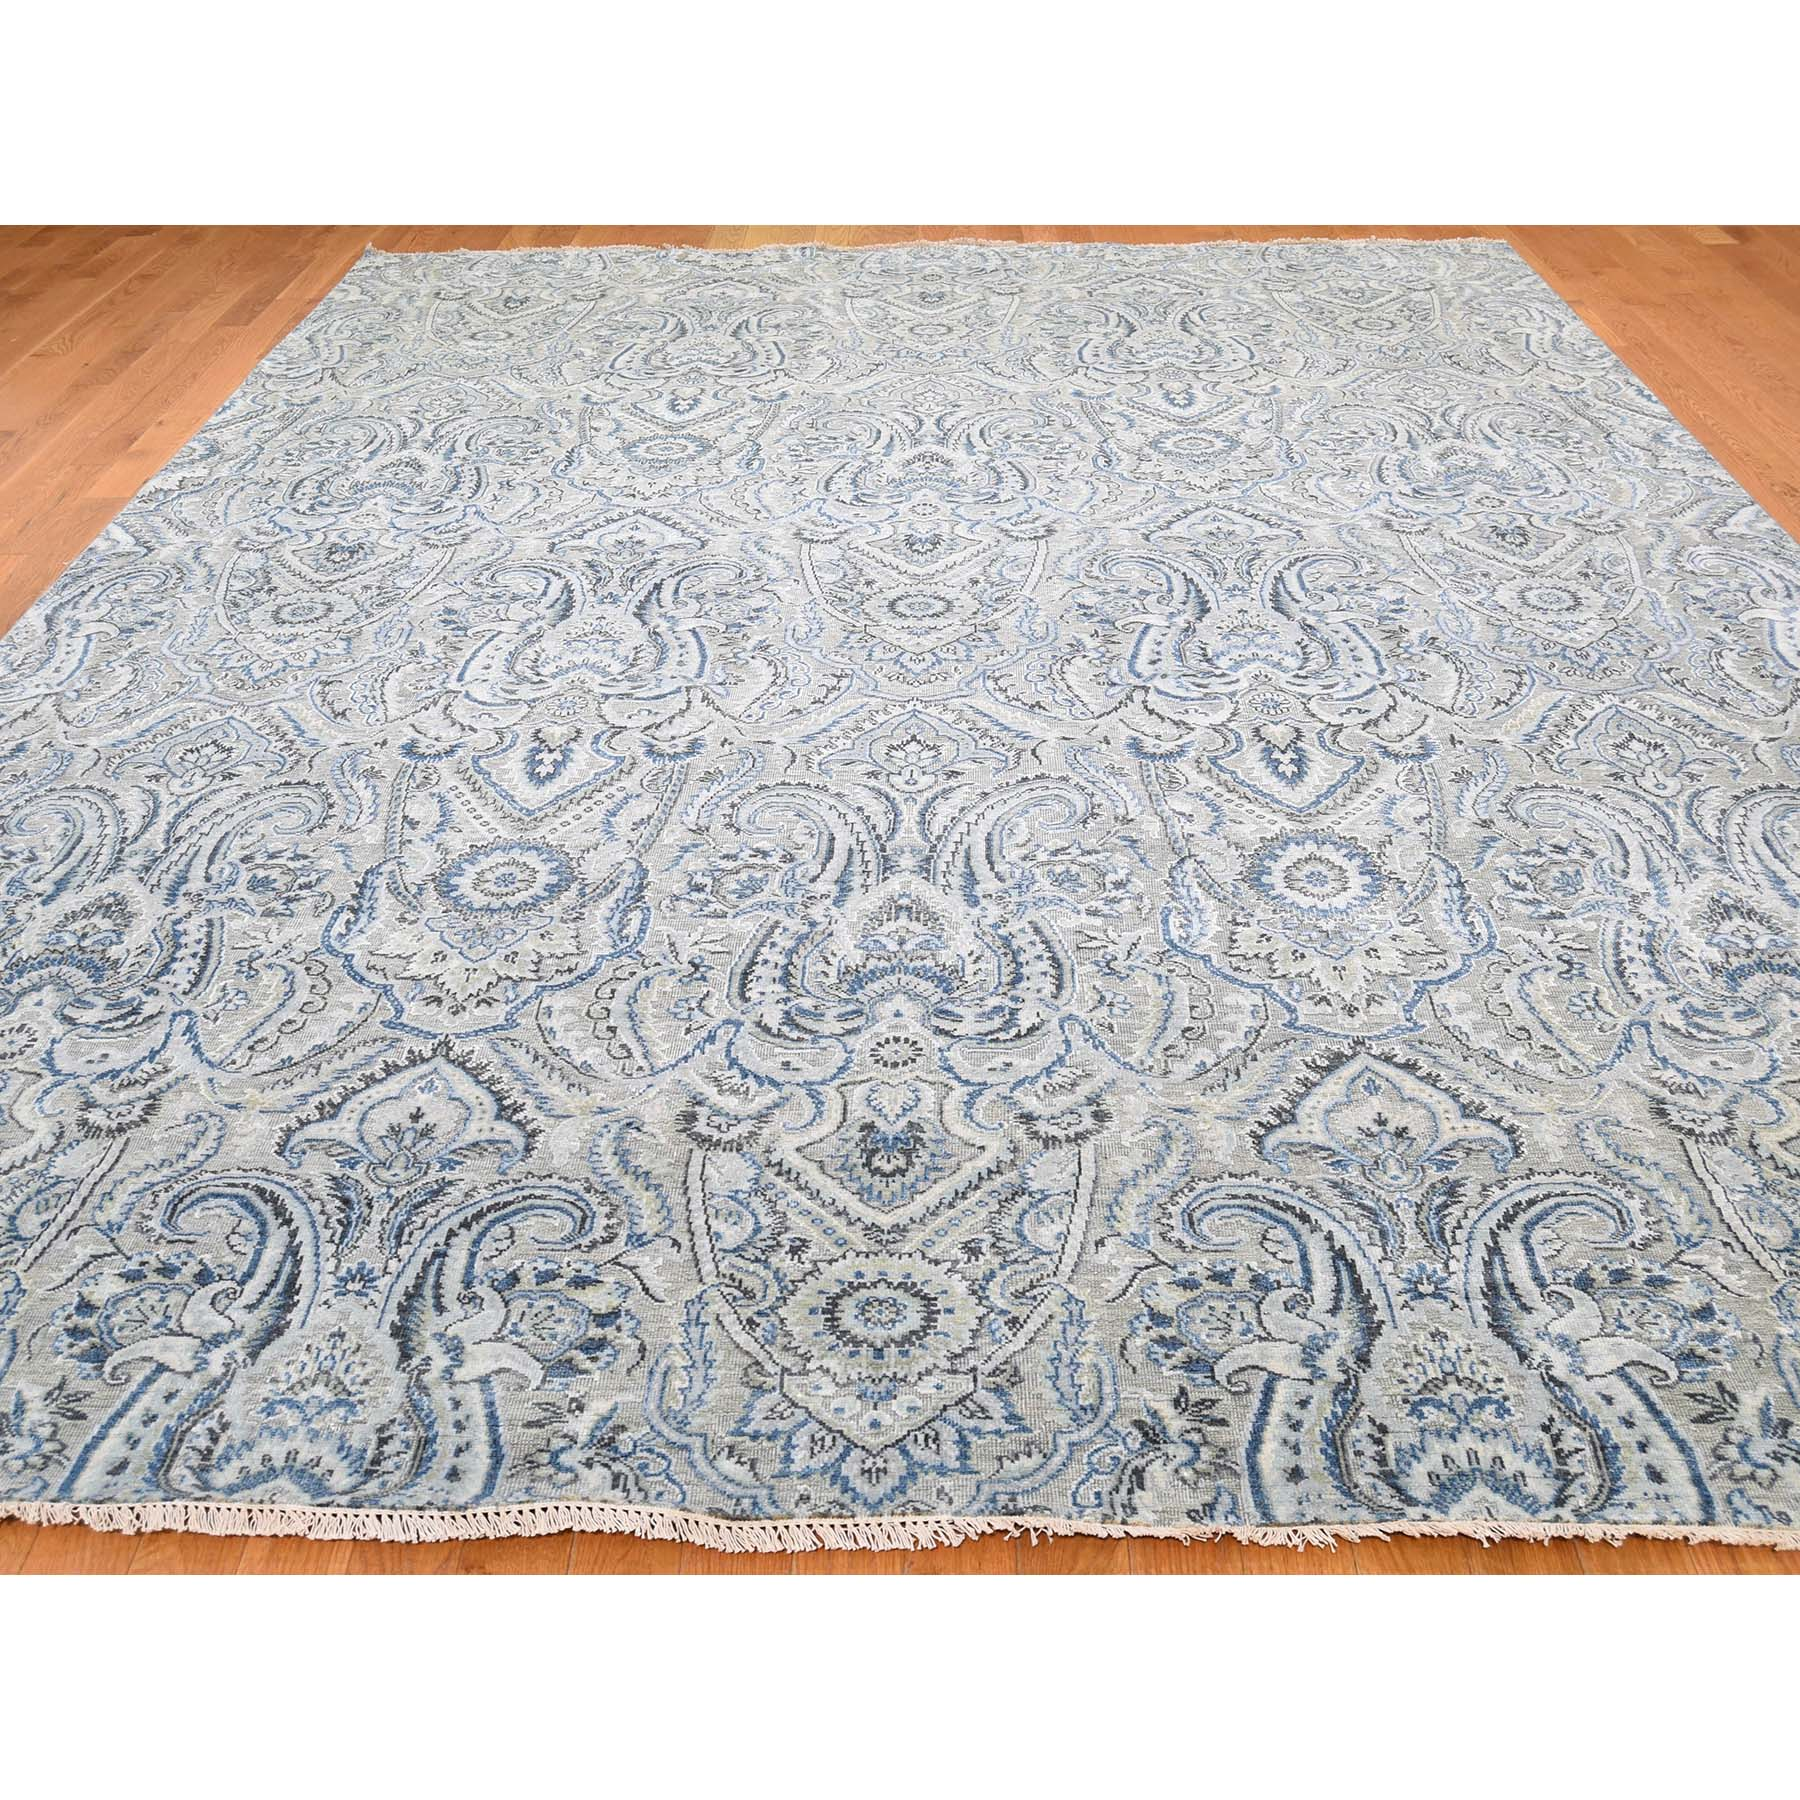 9-x12-1  Pure Silk Oxidized Wool Paisley Flower Design Hand-Knotted Rug